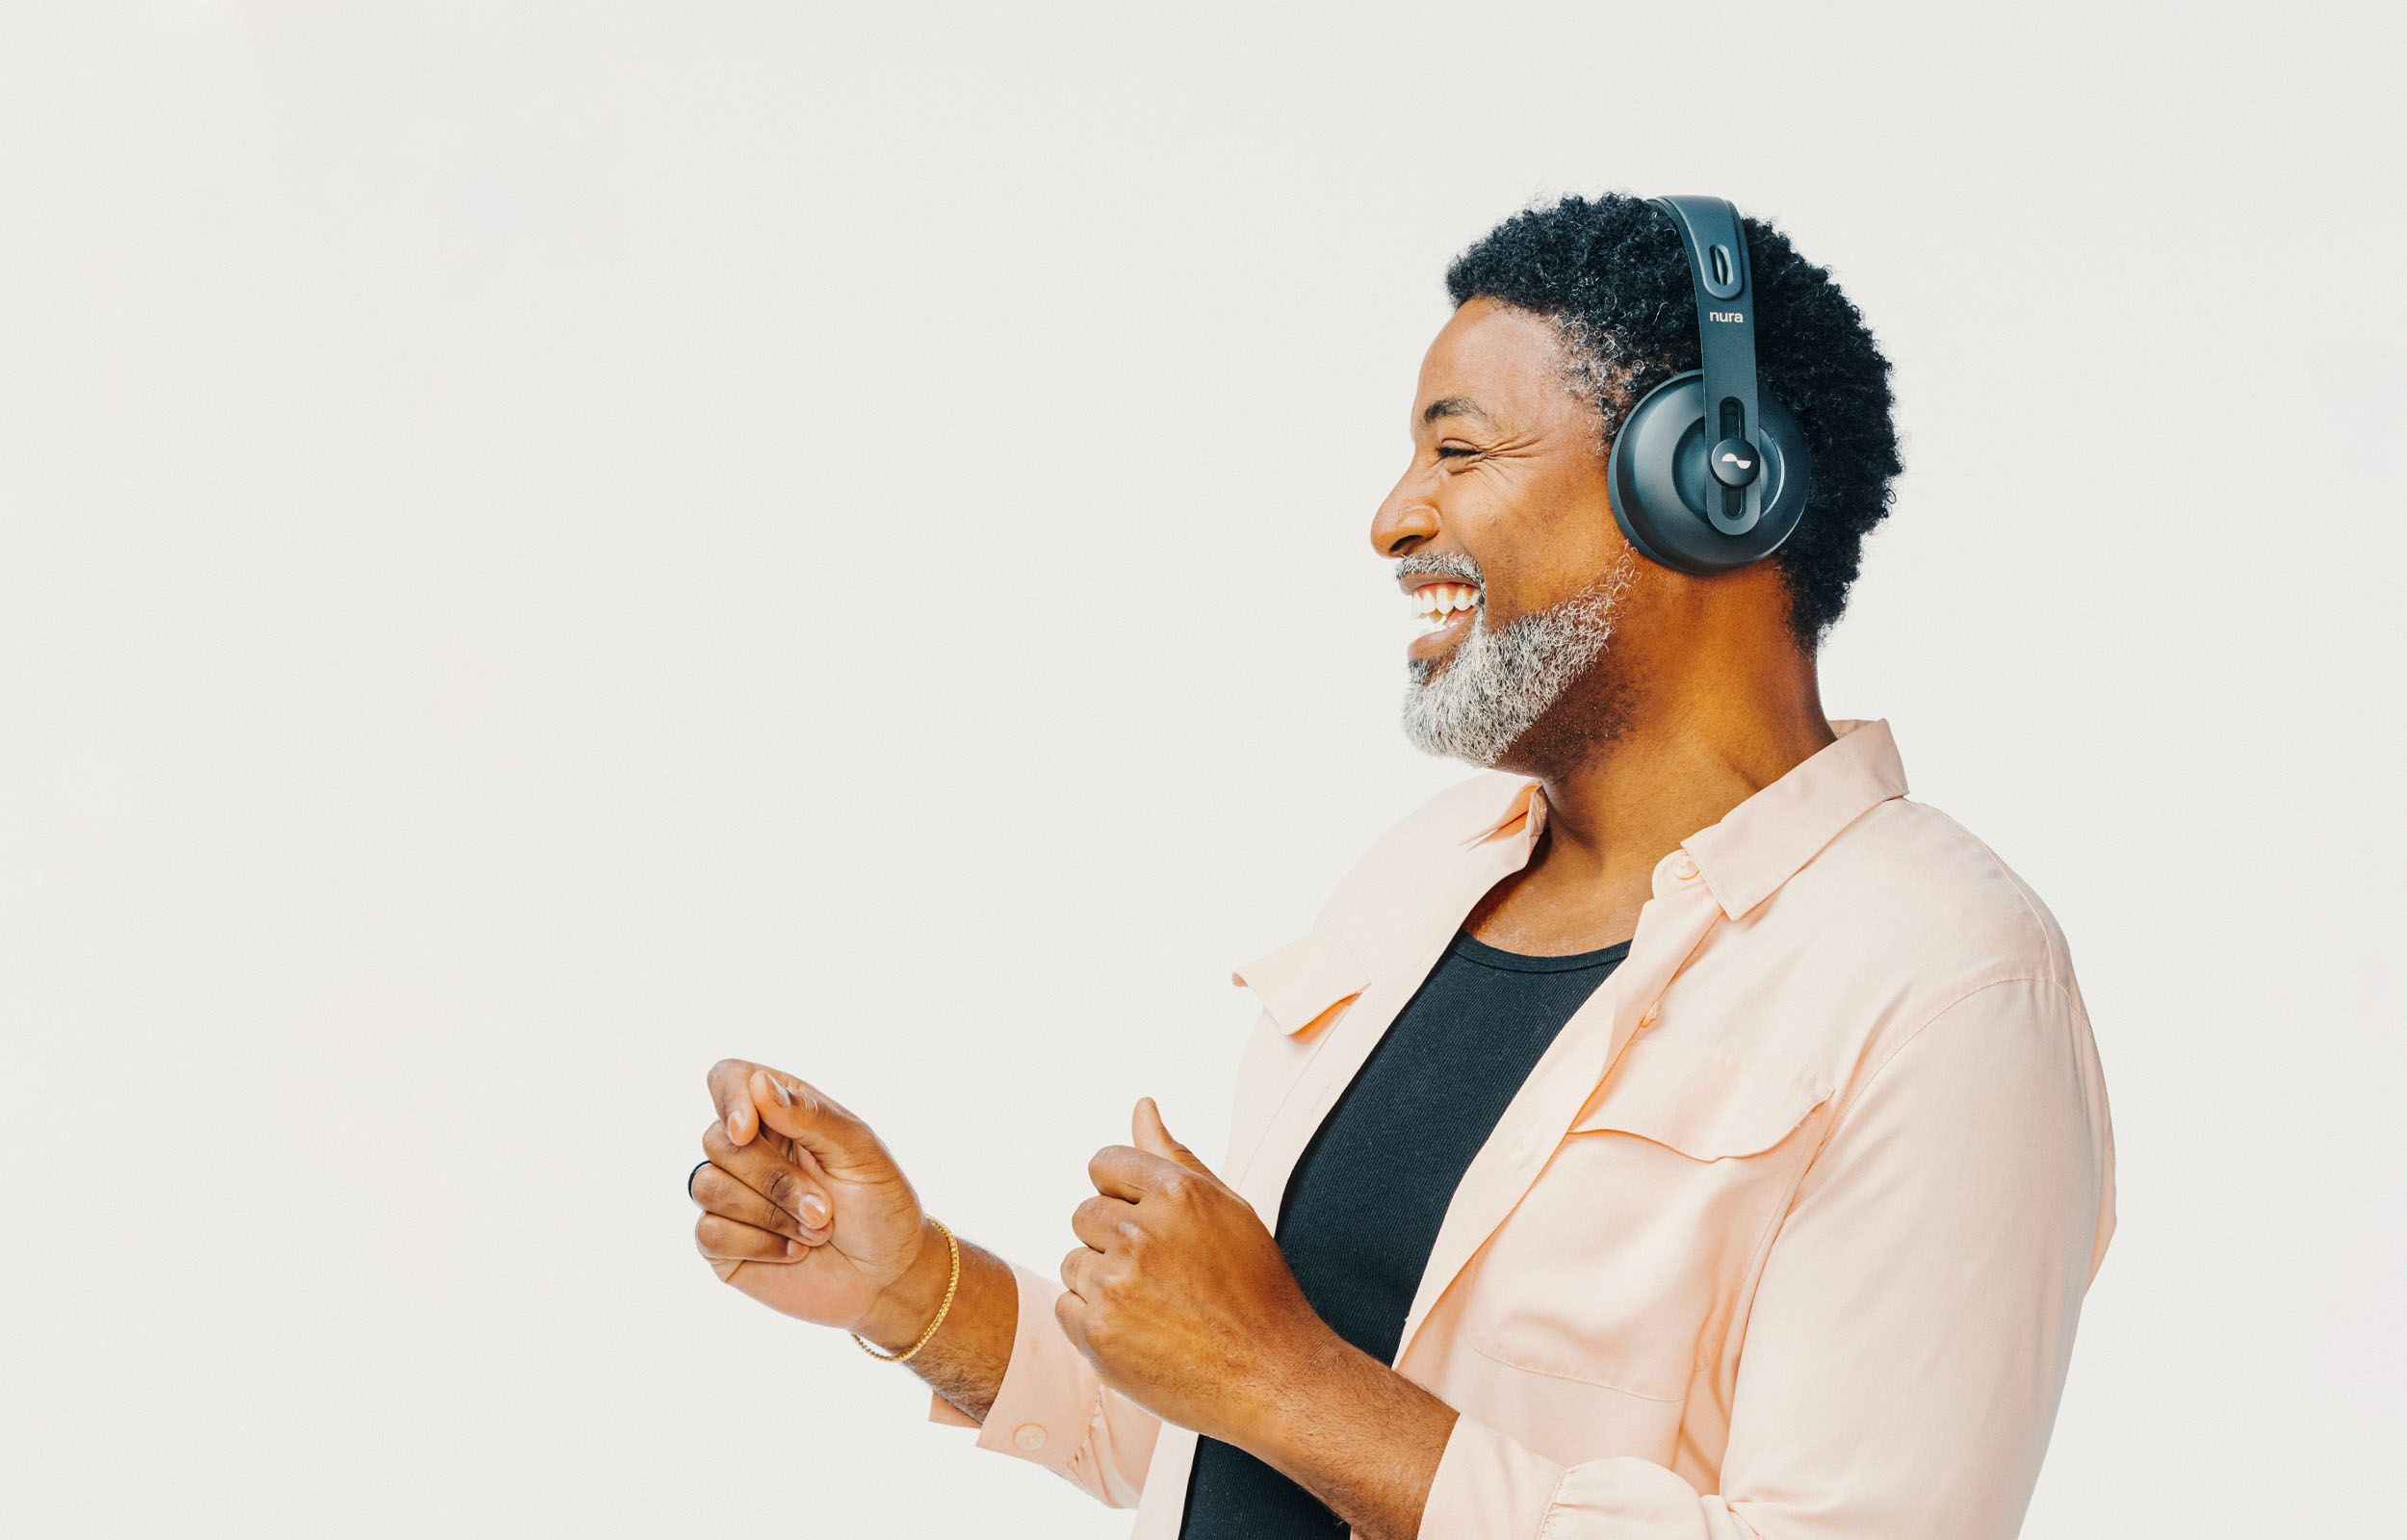 Person laughing and dancing with NURAPHONE headphones on ears